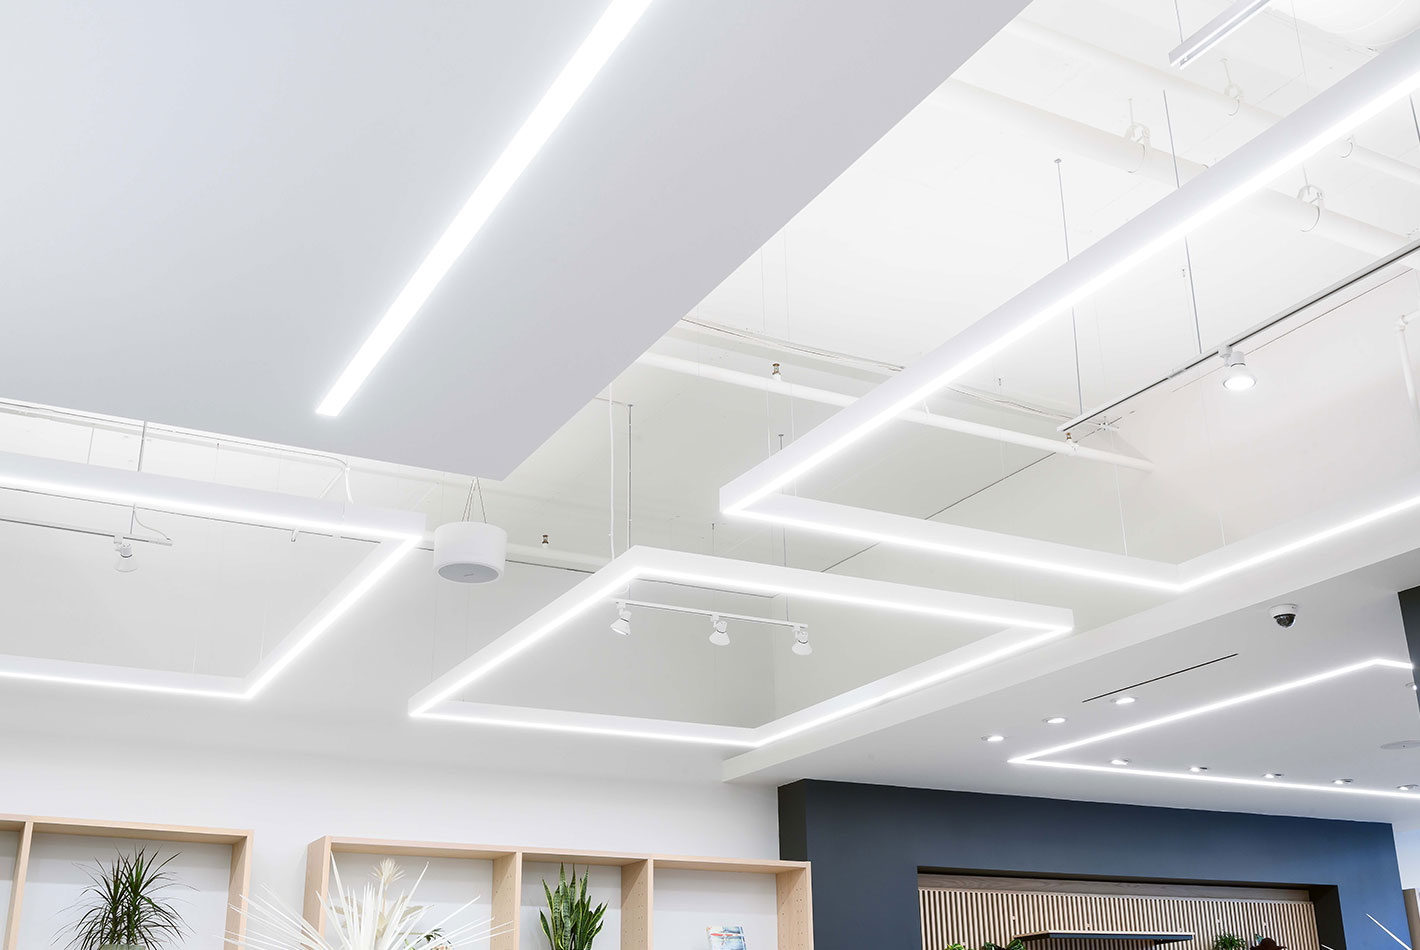 The innovative ceiling light fixtures provide soft illumination at J Crew's newly designed store